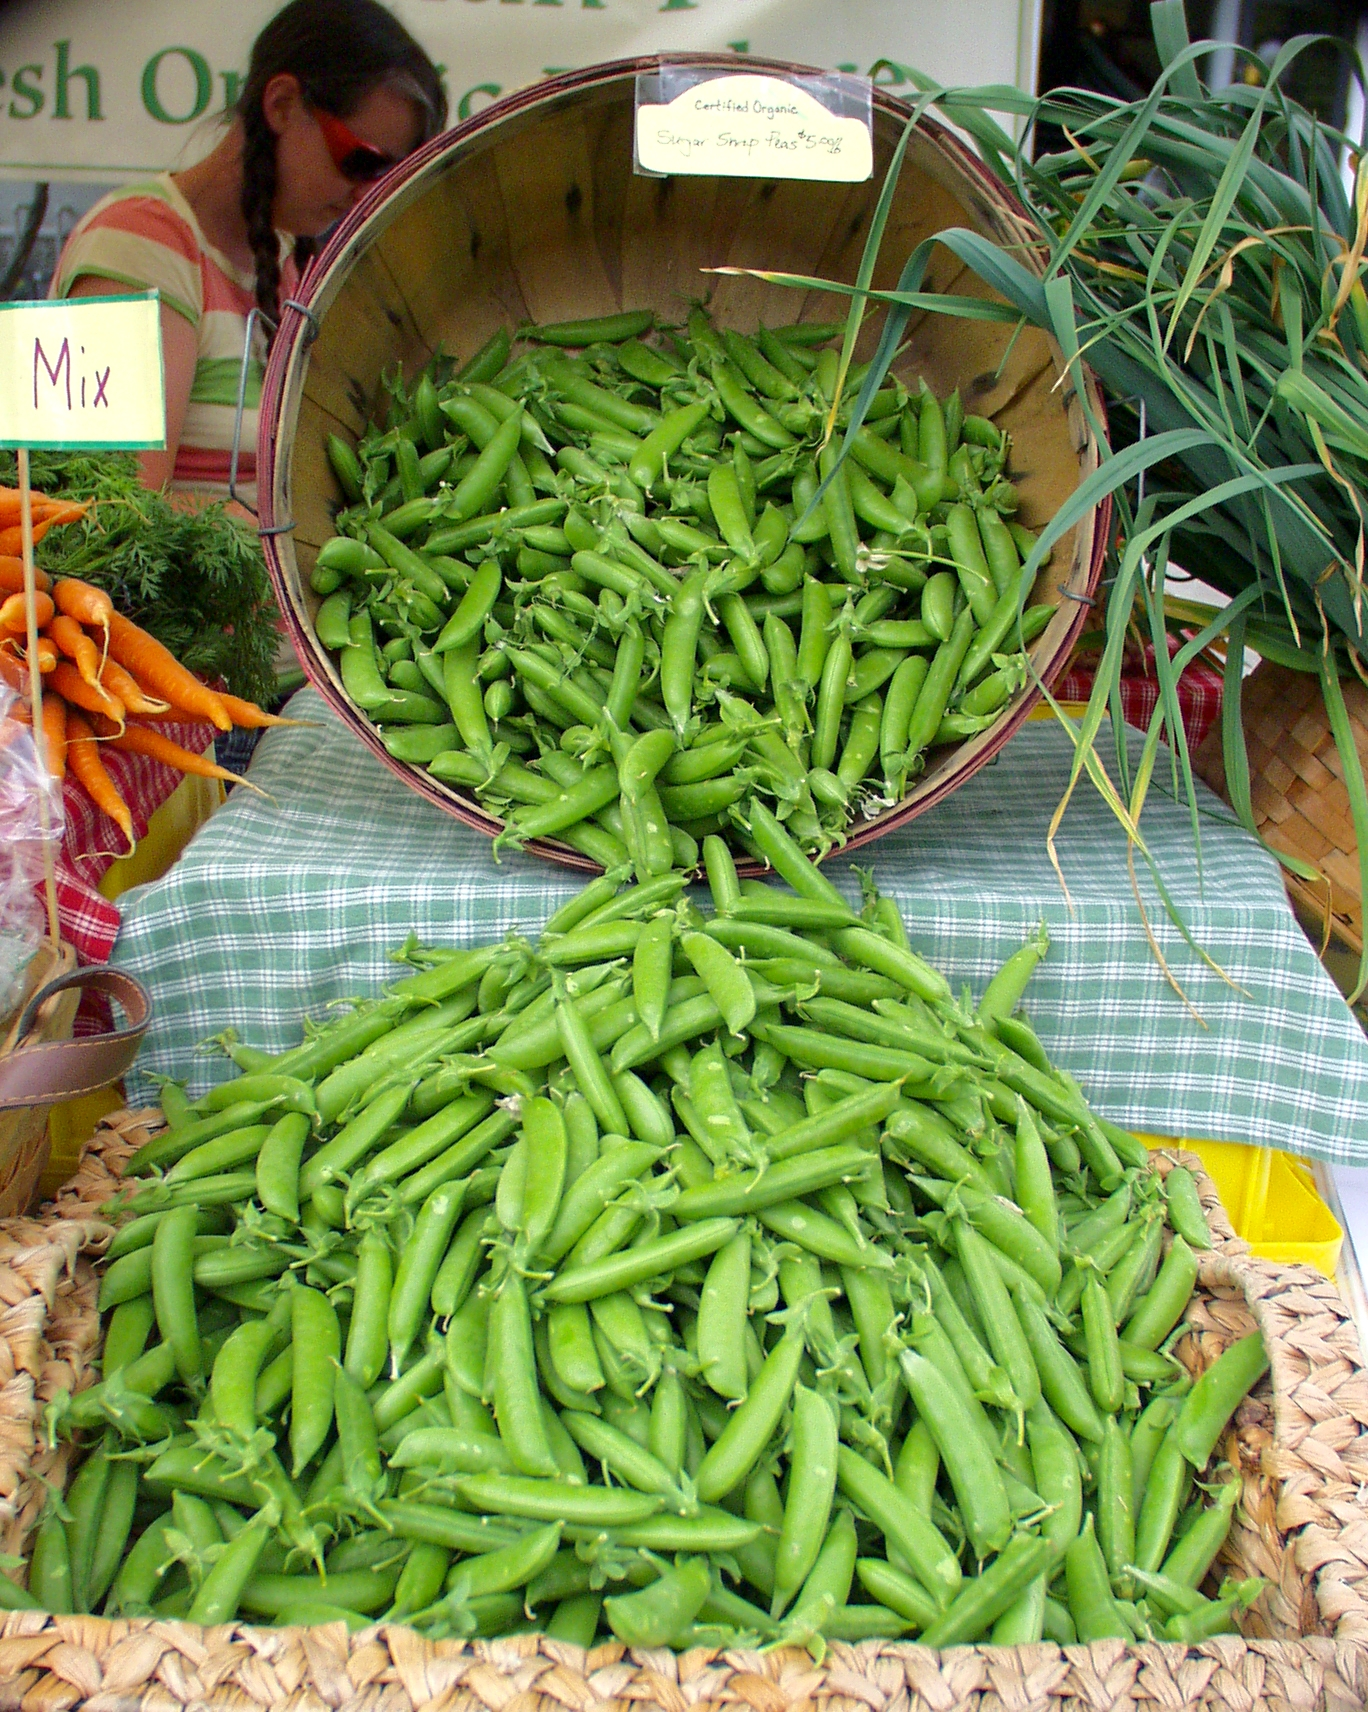 Summer Run's pea display looks as if they are just waiting to pour into your shopping bag for the trip home. Photo copyright 2009 by Zachary D. Lyons.